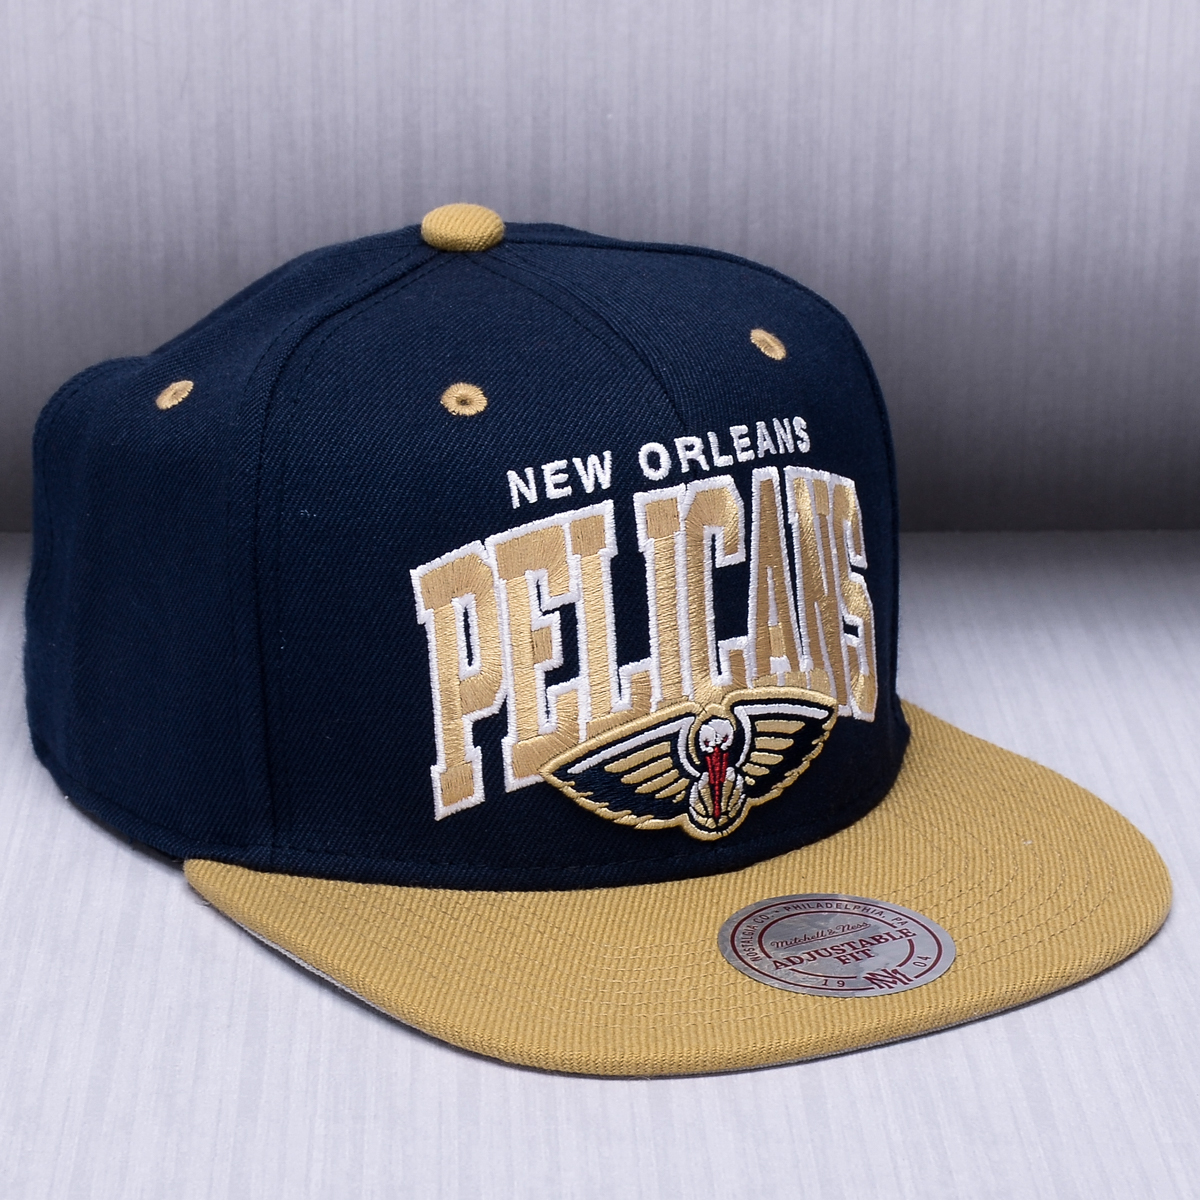 100% authentic 461d4 fe224 Mitchell   Ness NBA New Orleans Pelicans Team Arch Snapback Cap - NBA Shop  New Orleans Pelicans Merchandise - Superfanas.lt